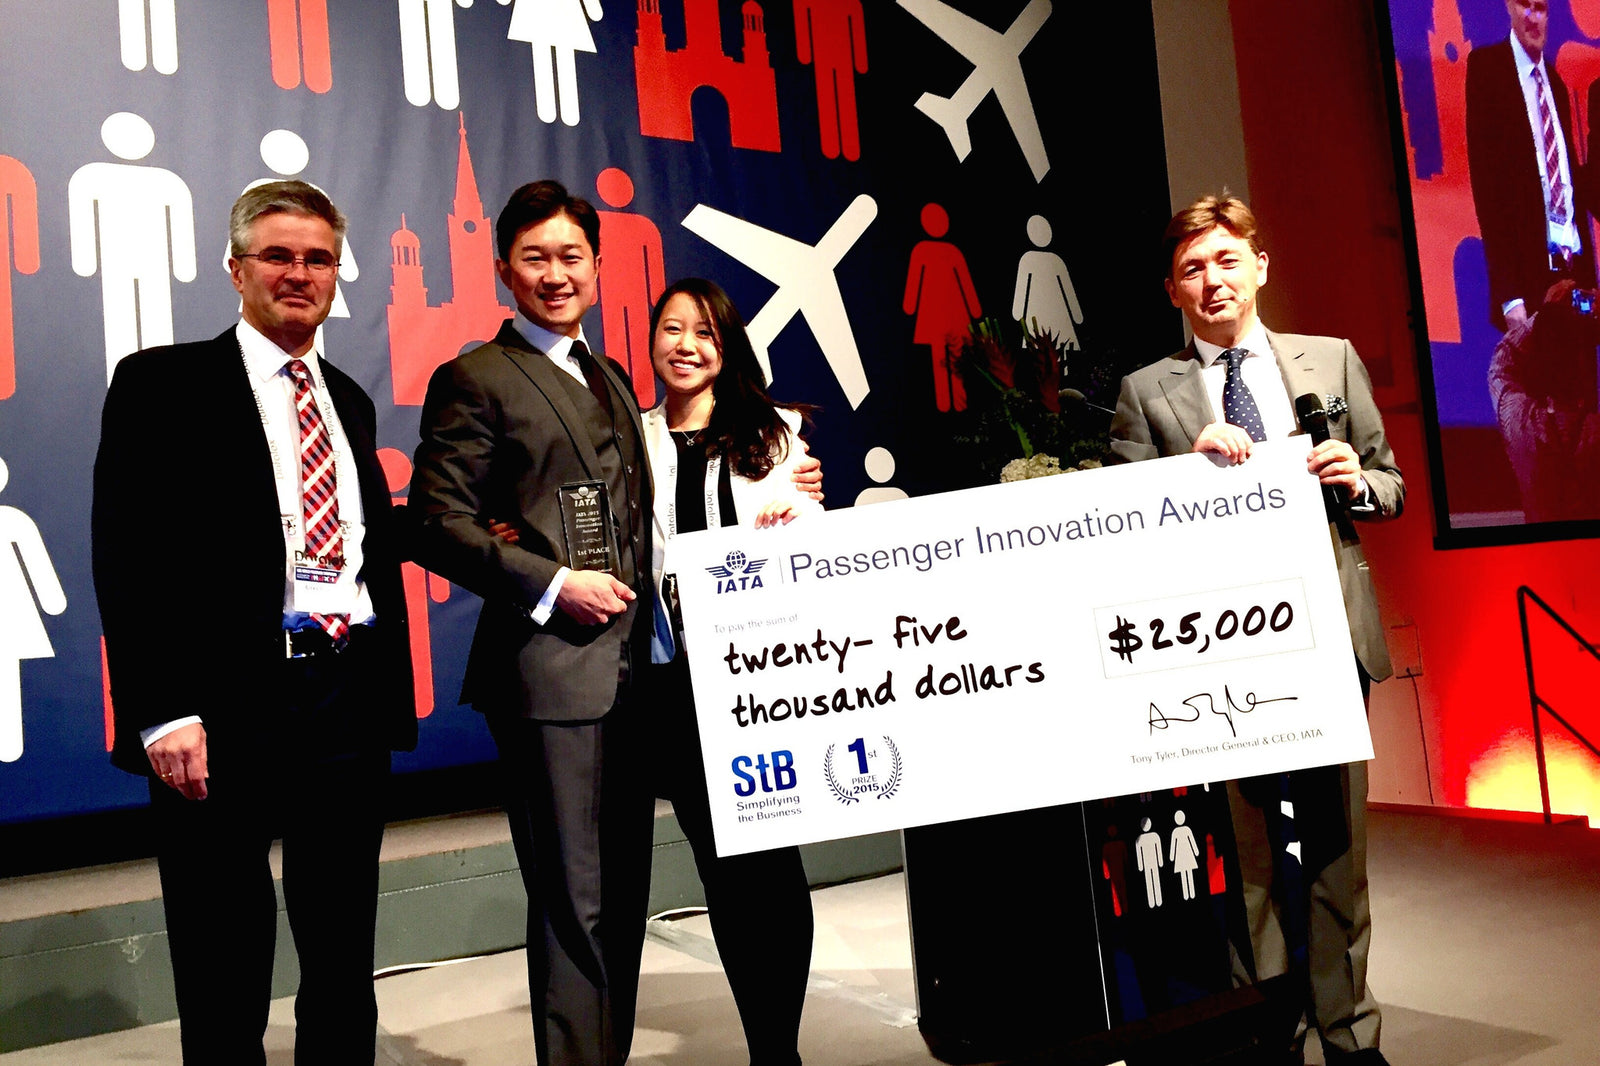 Soarigami is the winner of the Passenger Innovation Awards by IATA.